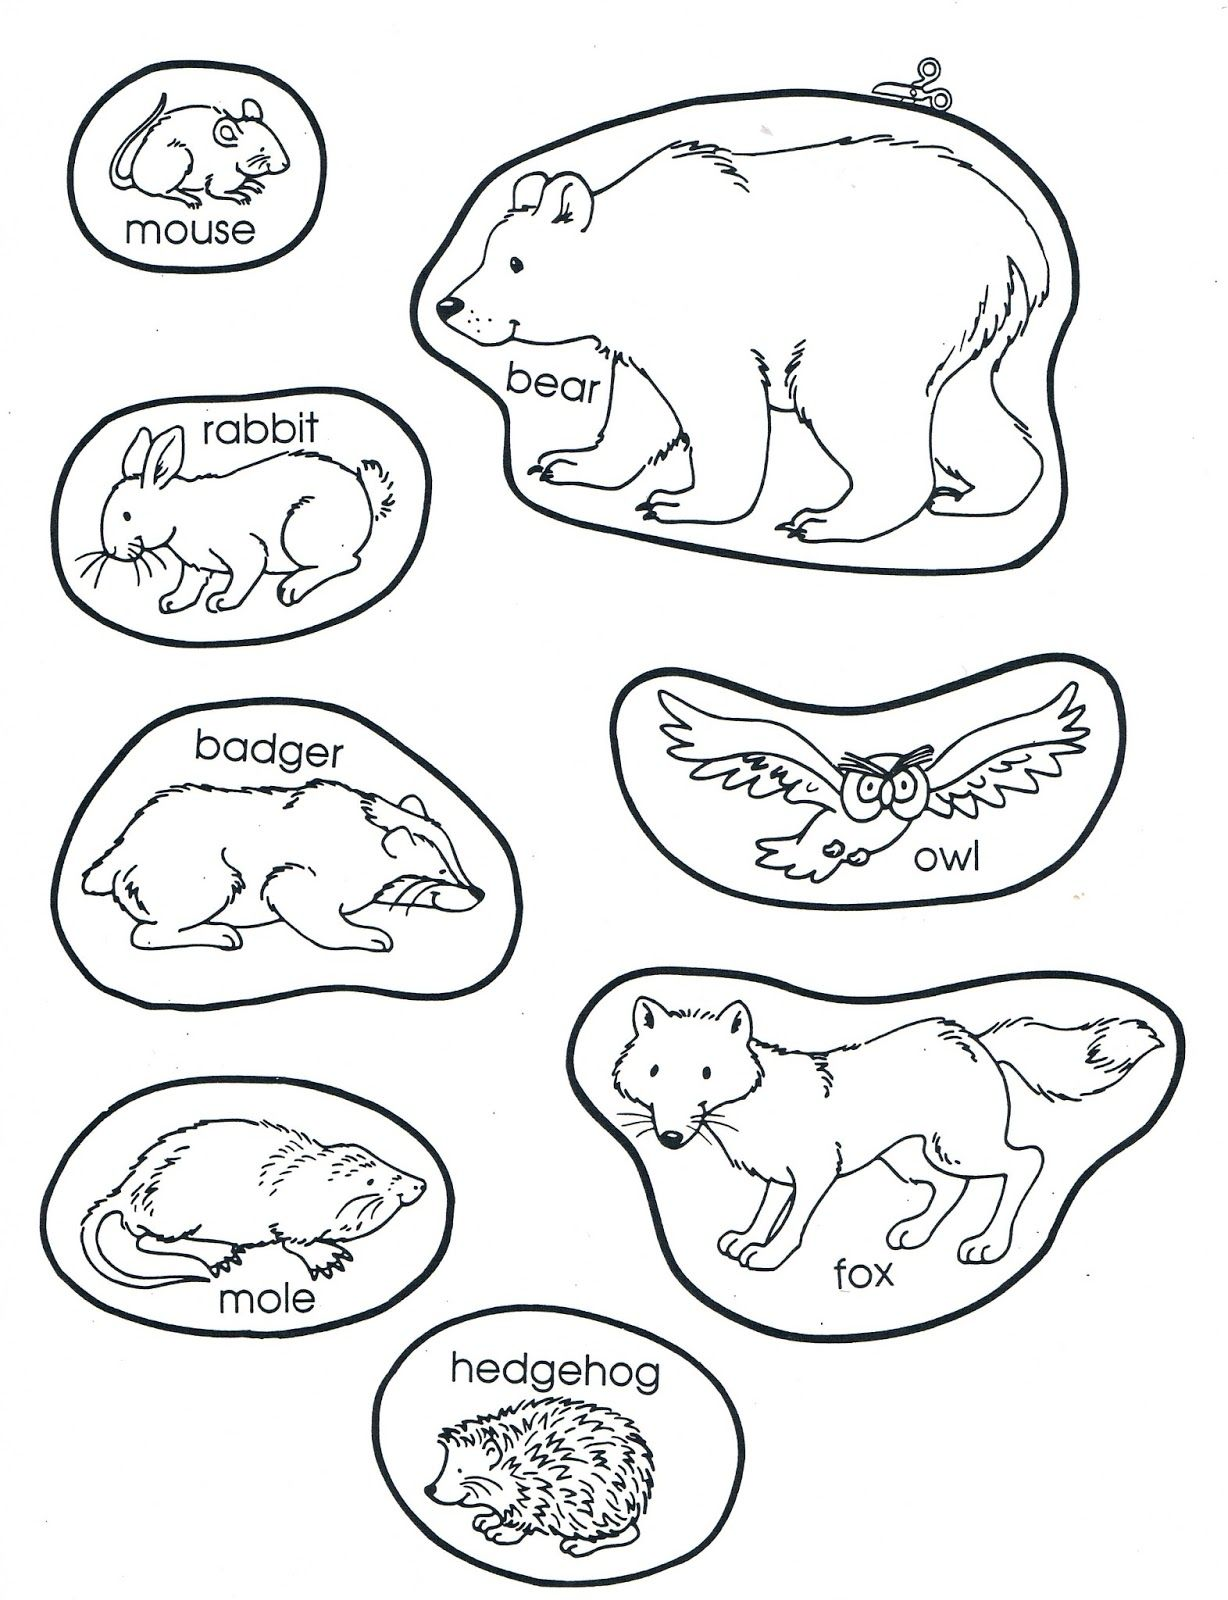 A Teacher Without A Class The Mitten The Animals The The Mitten Coloring Page